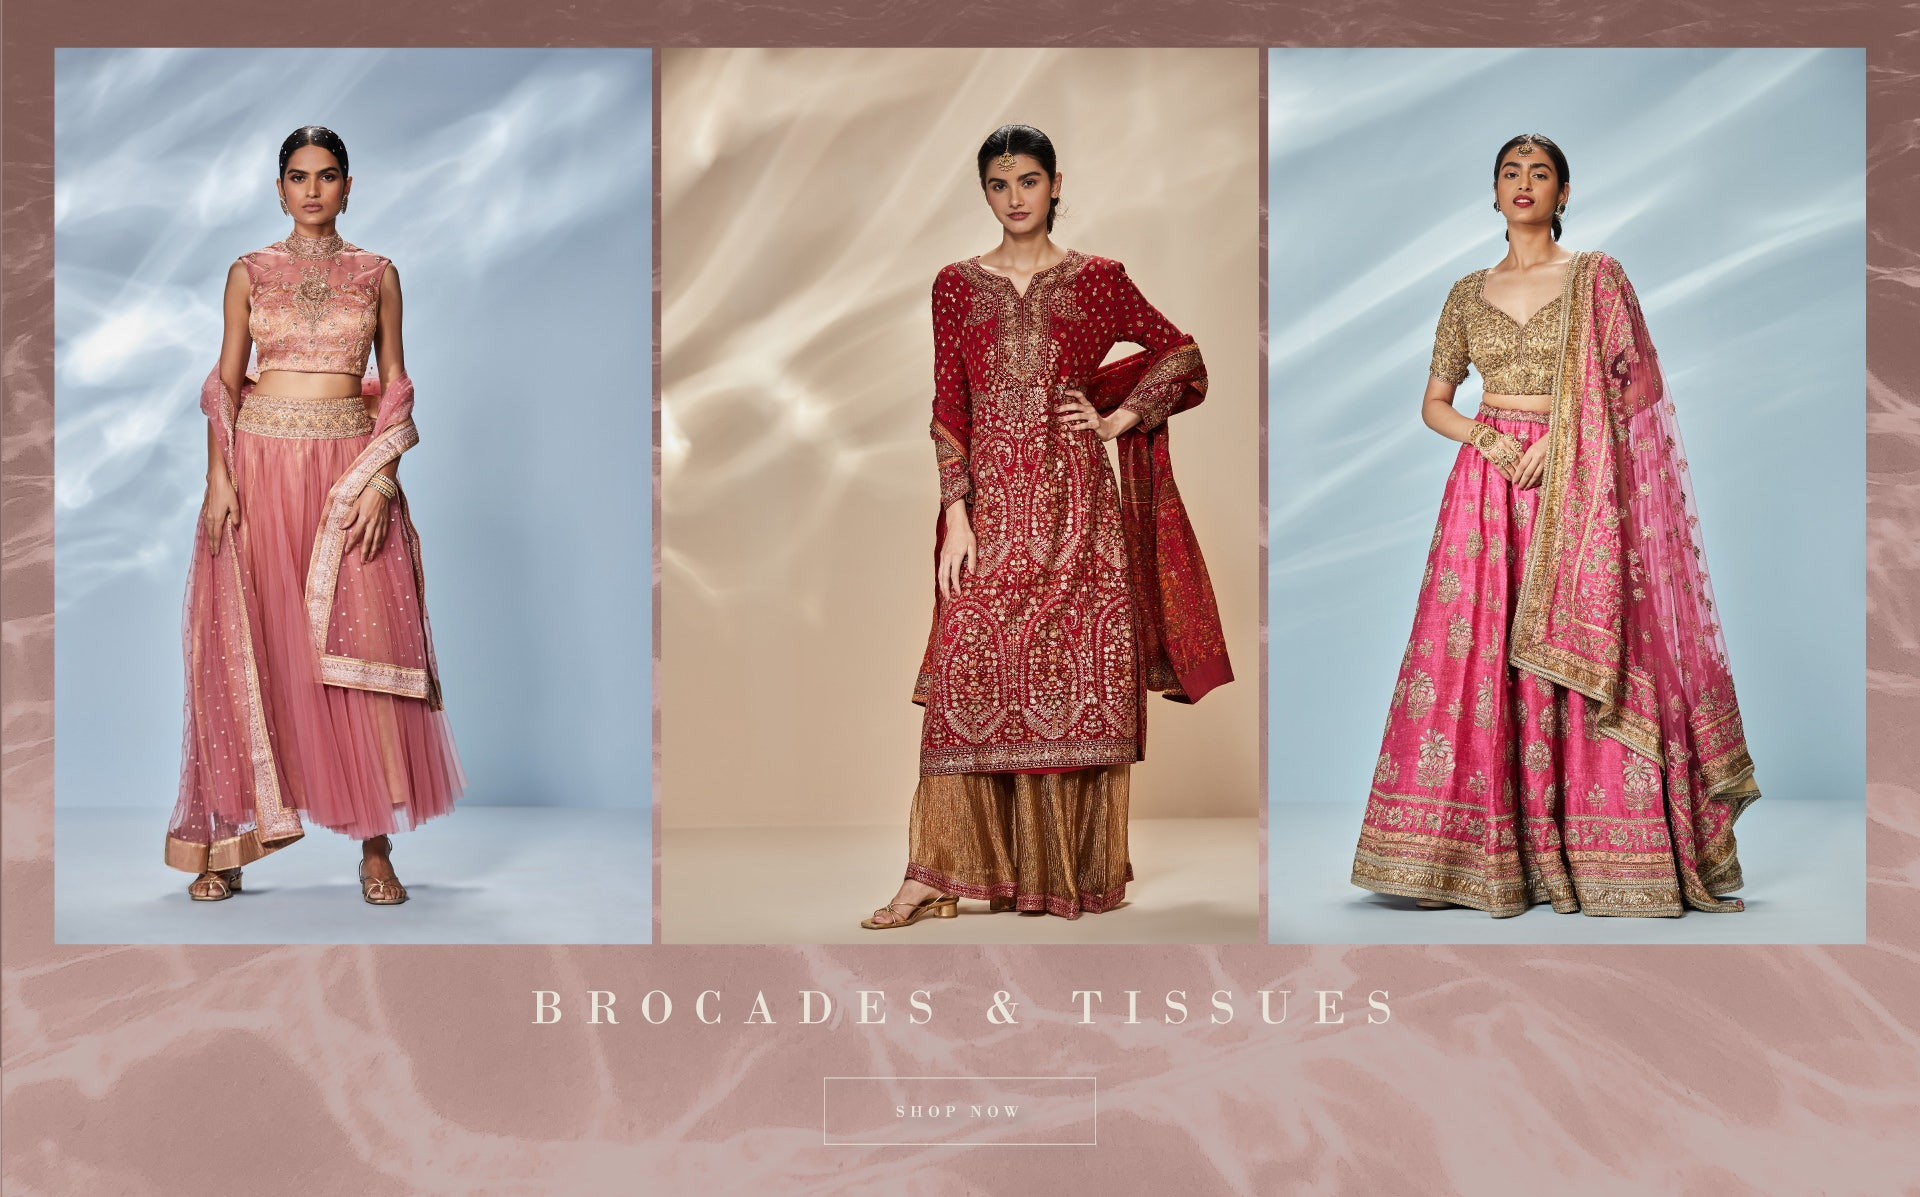 Brocades and Tissues